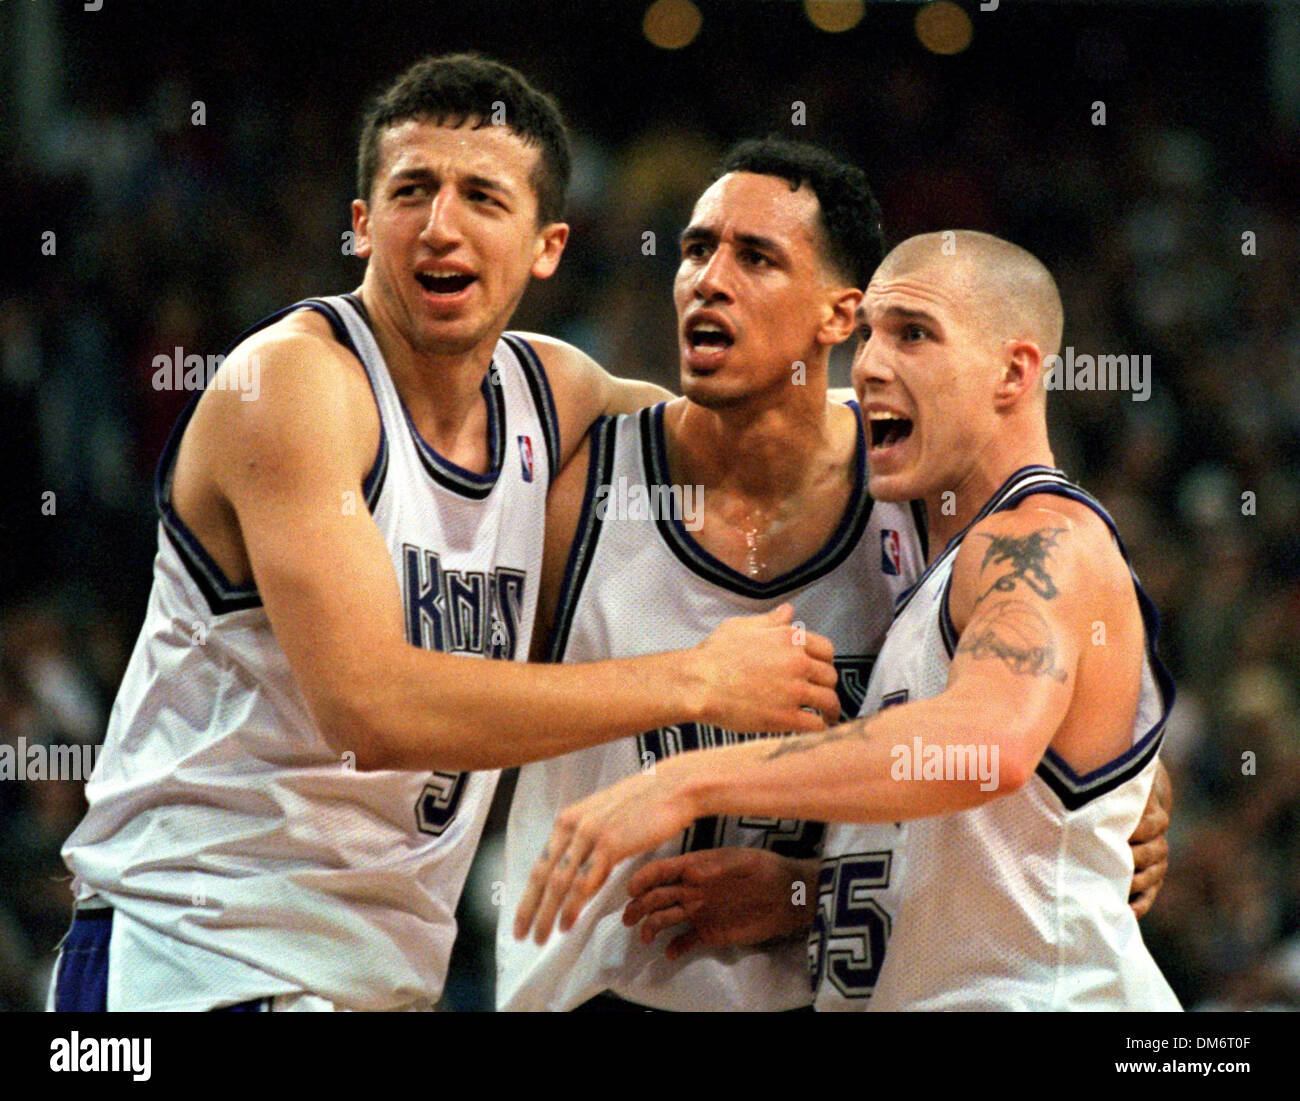 Celebrating Kings players Hedo Turkoglu Doug Christie and Jason